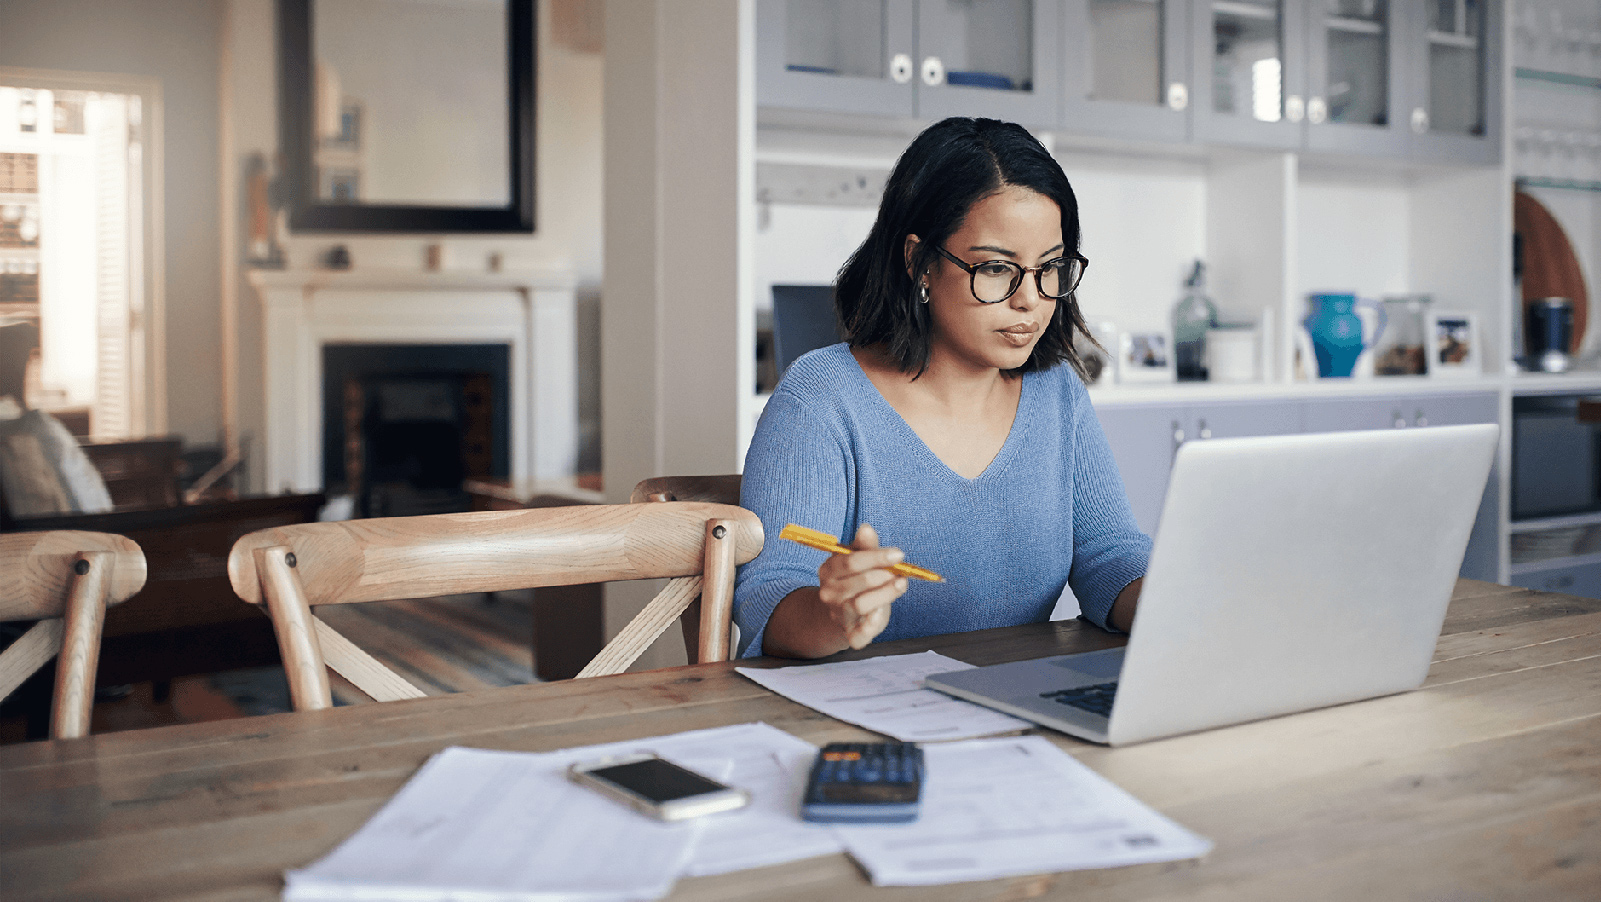 Woman looking at her laptop on the kitchen table with paperwork.